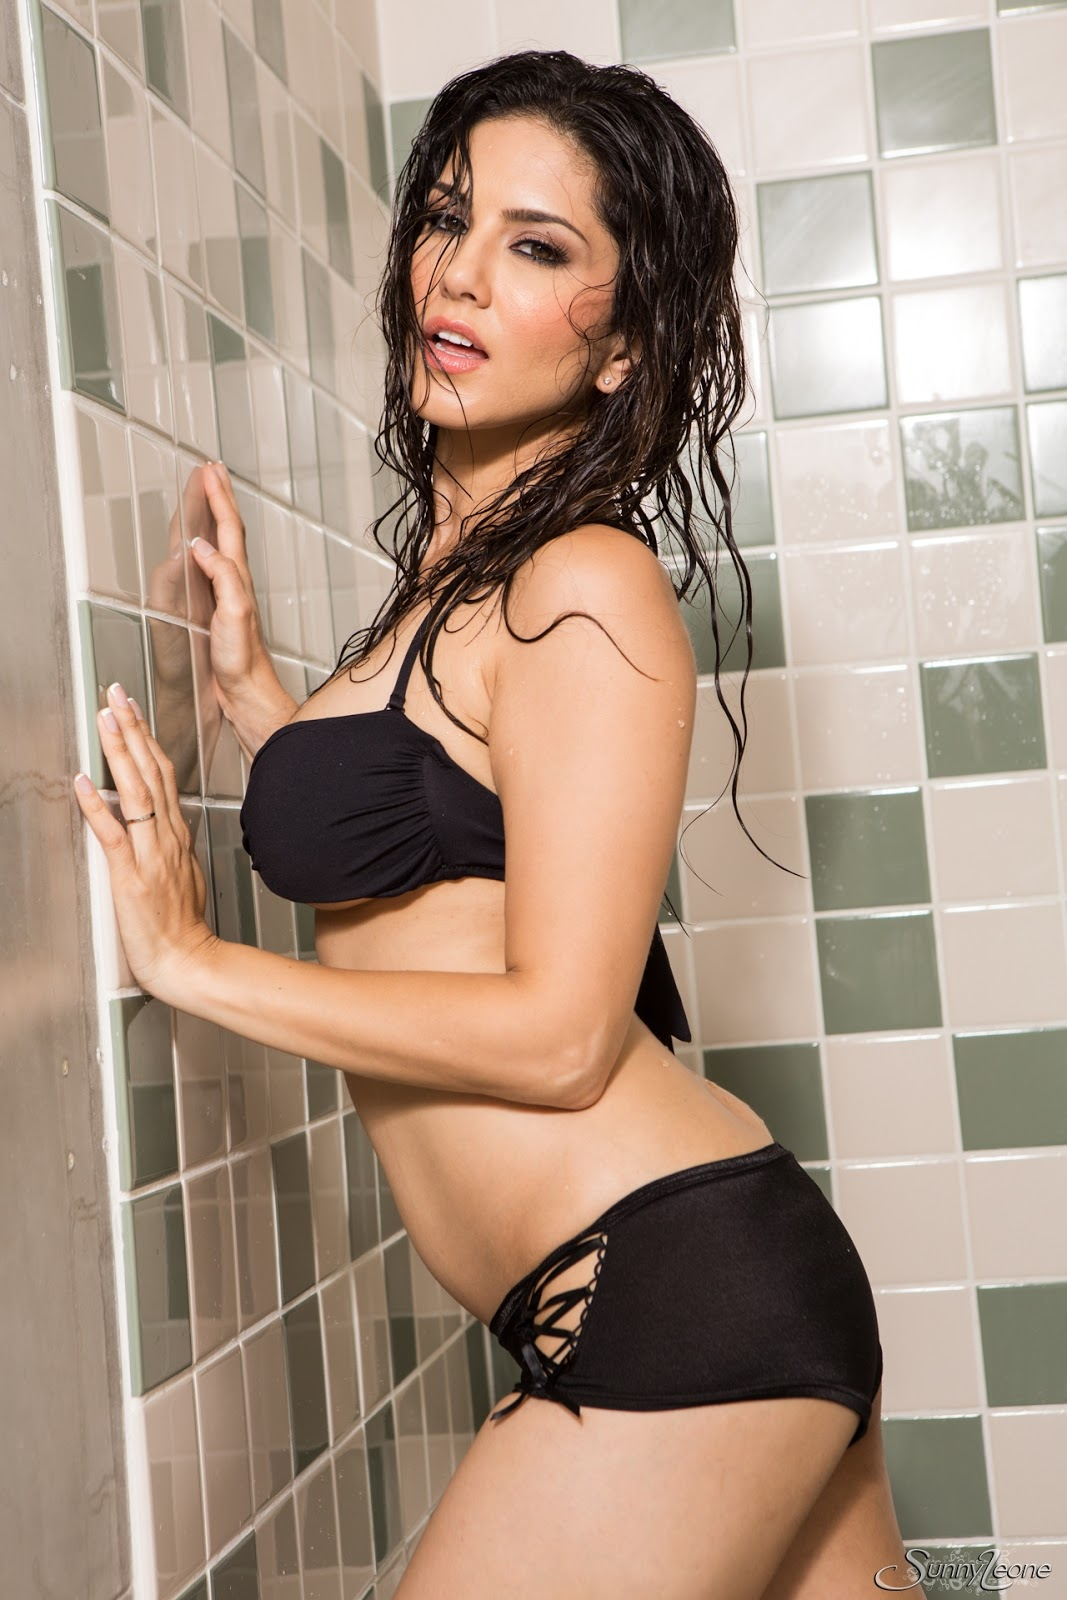 Sunny Leone Is Taking A Hot Shower While In Her Black Wet -4202